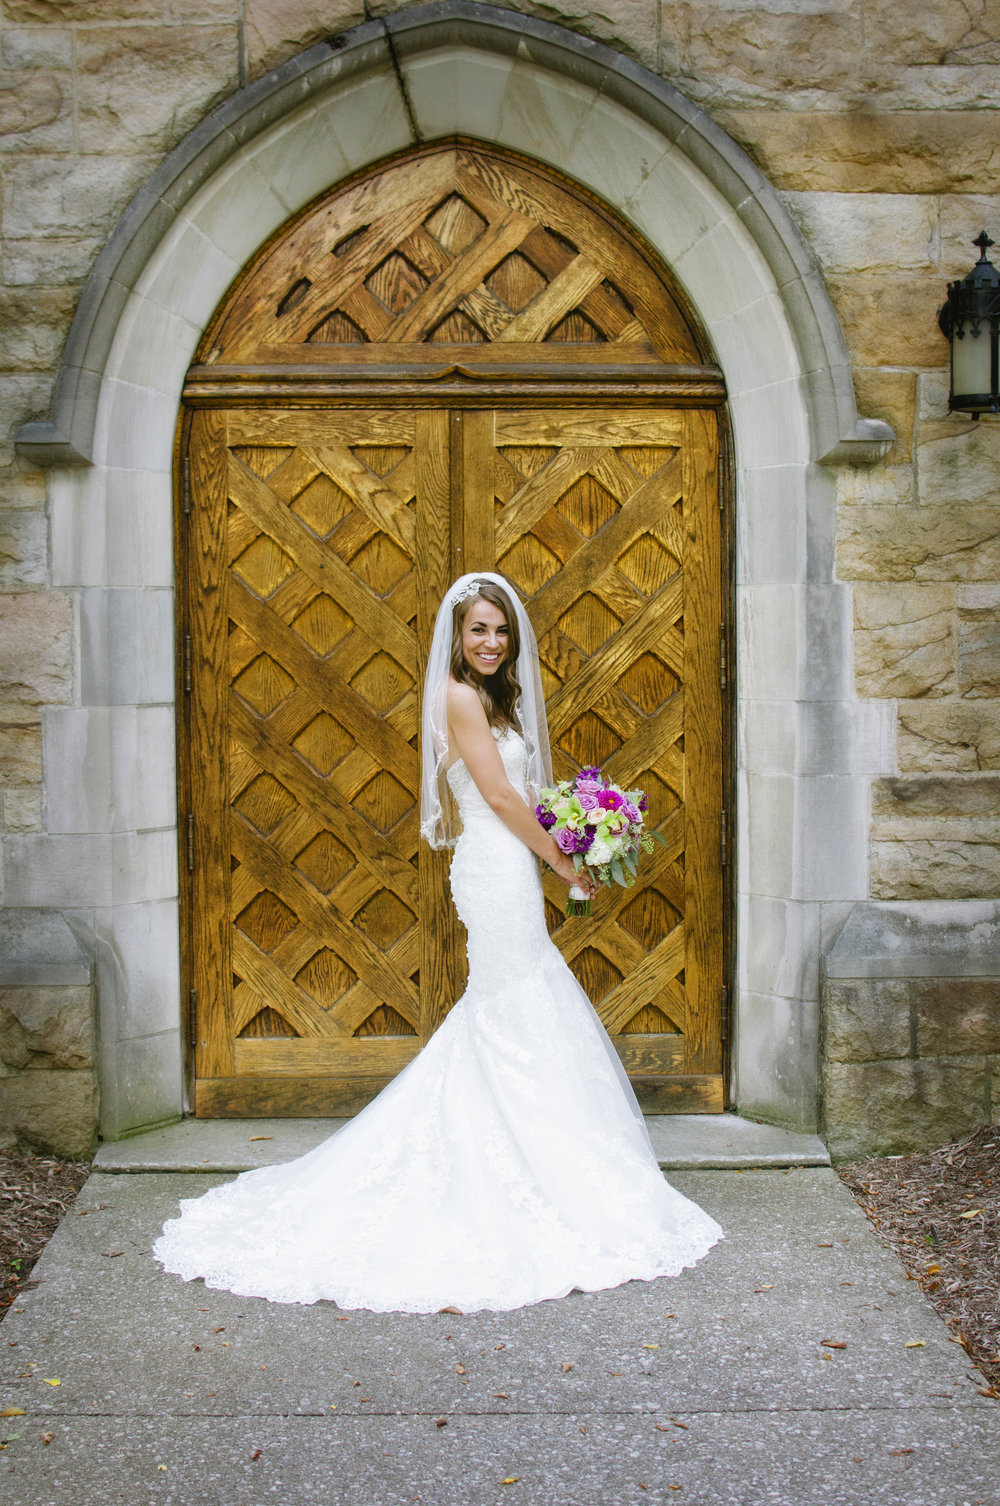 Bride posing in front of large medieval looking wooden door at church